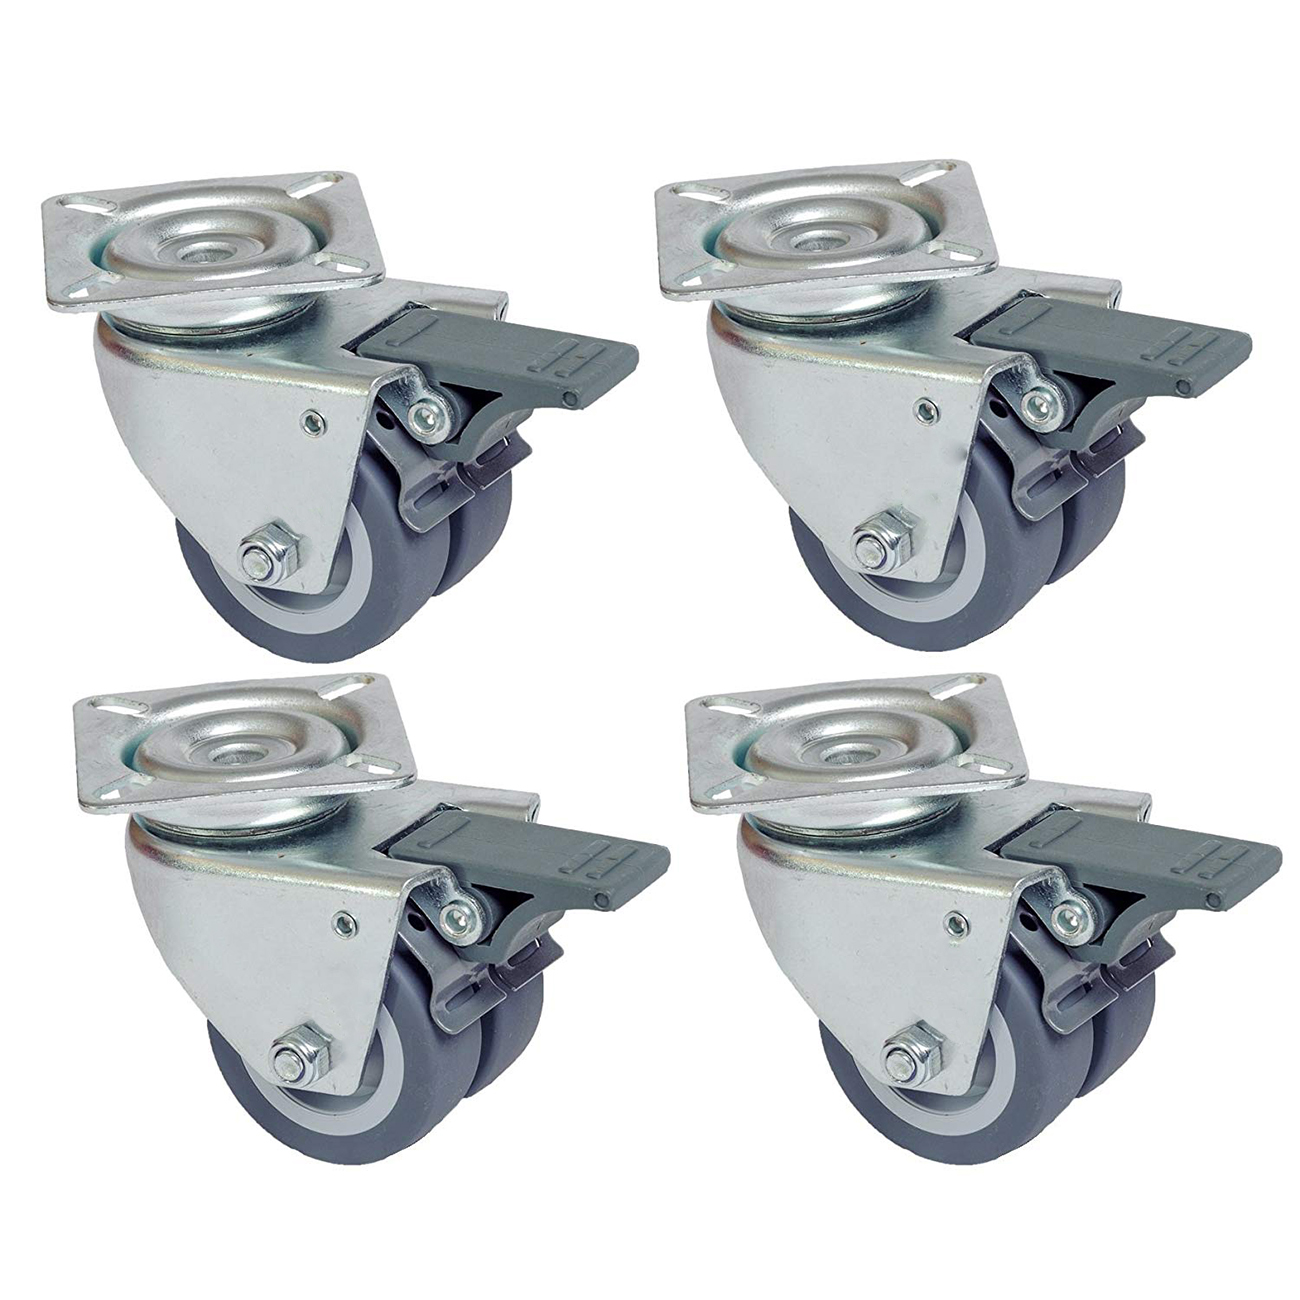 New 4 Pieces Beach Chair Caster with Brake Double Wheel Suitable for Turf Capacity 400 kg Furniture CasterNew 4 Pieces Beach Chair Caster with Brake Double Wheel Suitable for Turf Capacity 400 kg Furniture Caster